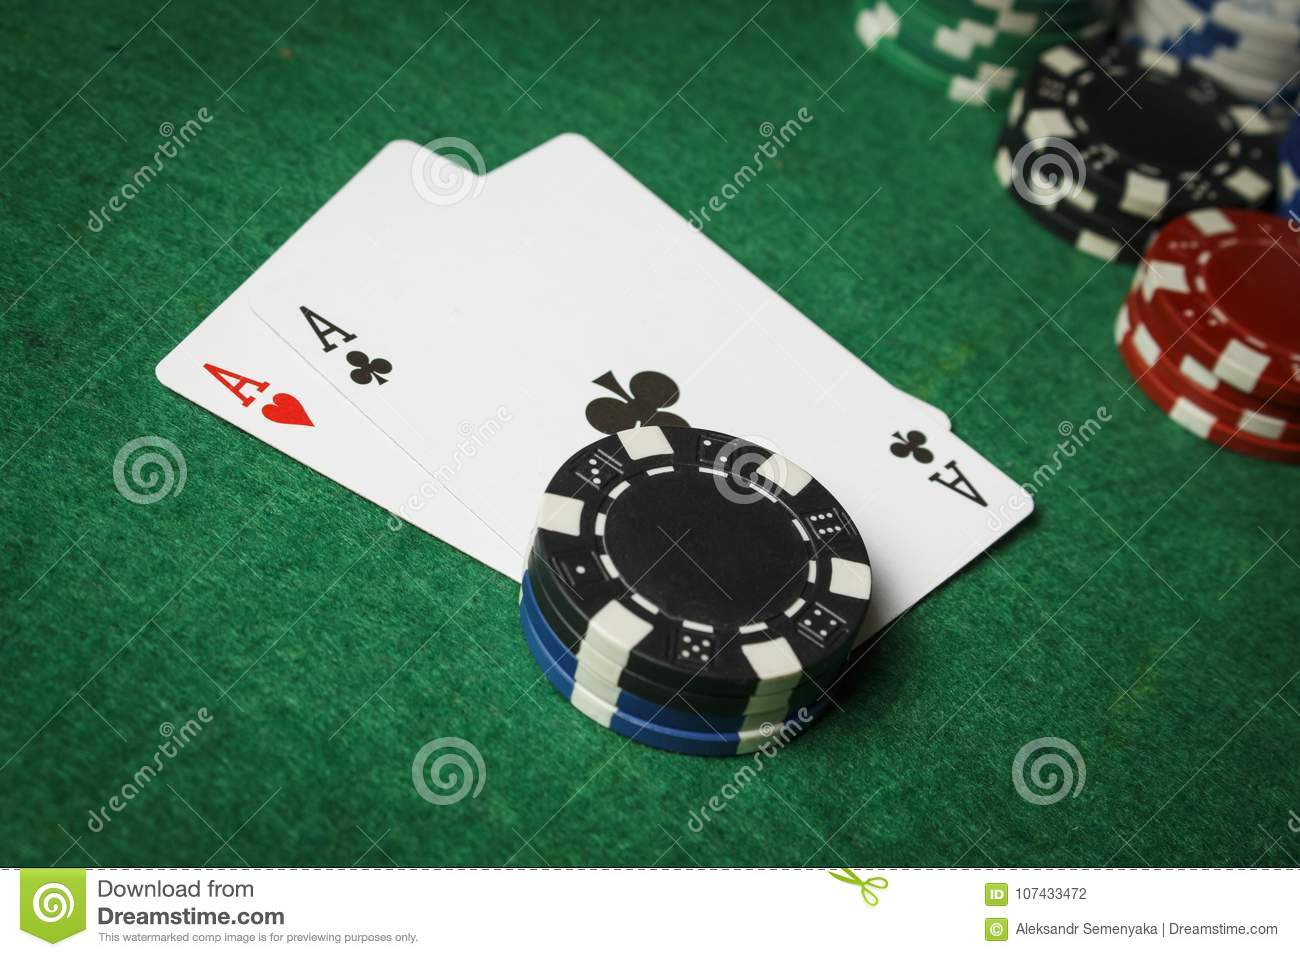 A pair of aces with a pile of poker chips